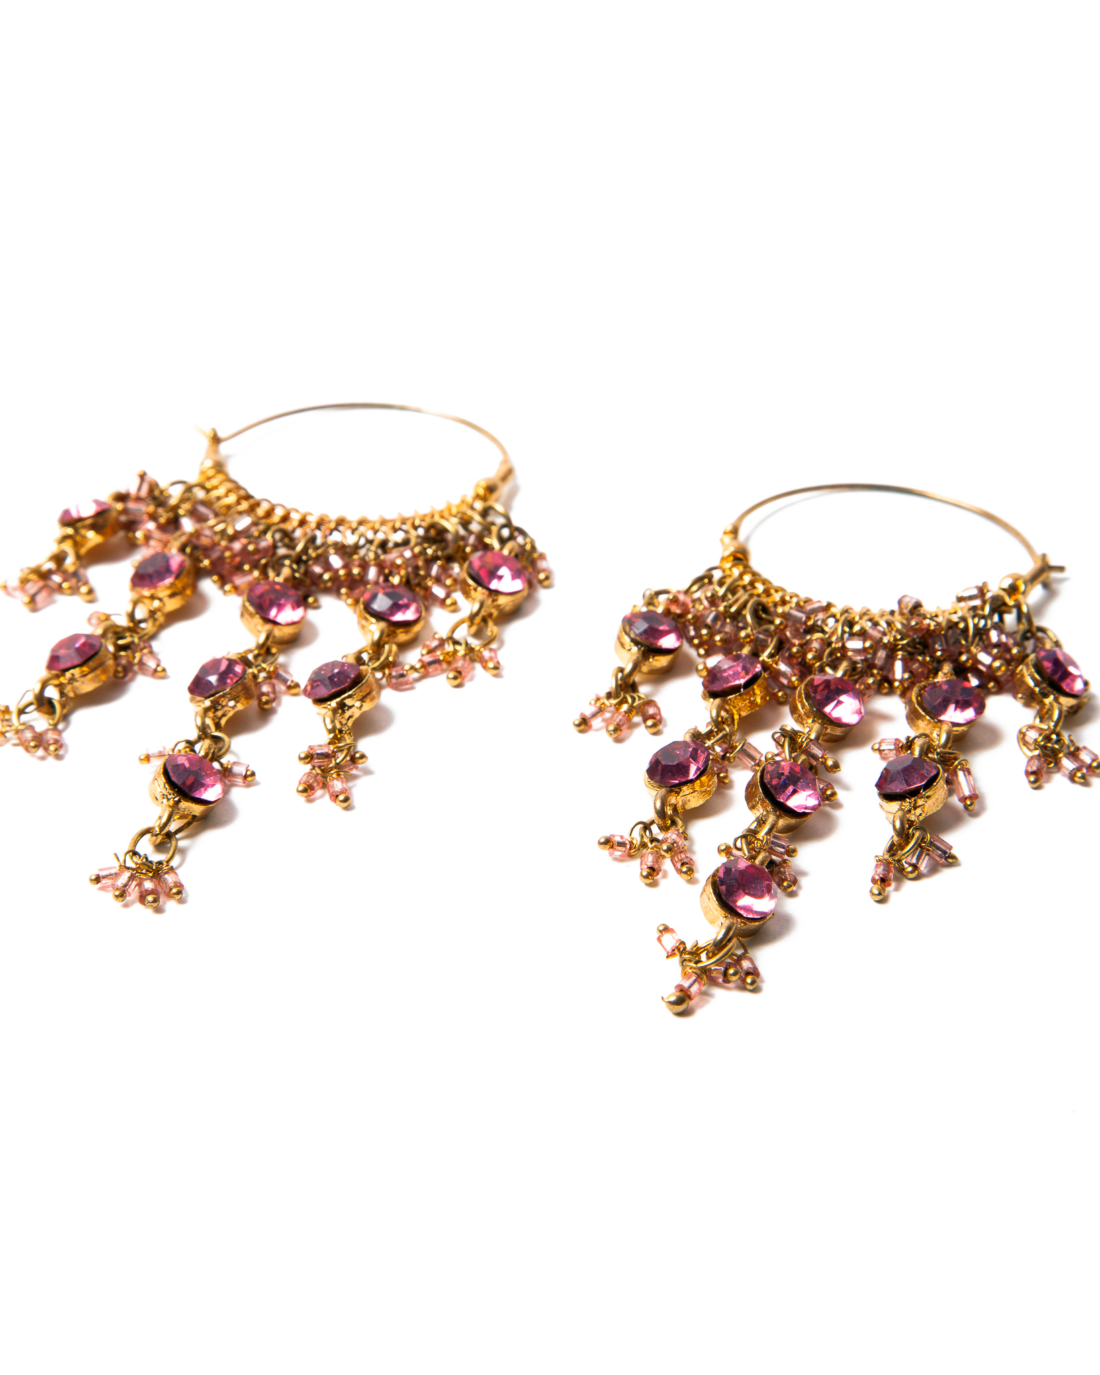 Pink Crystal Gypsy Chandelier Hoop Earrings, circa 1980's